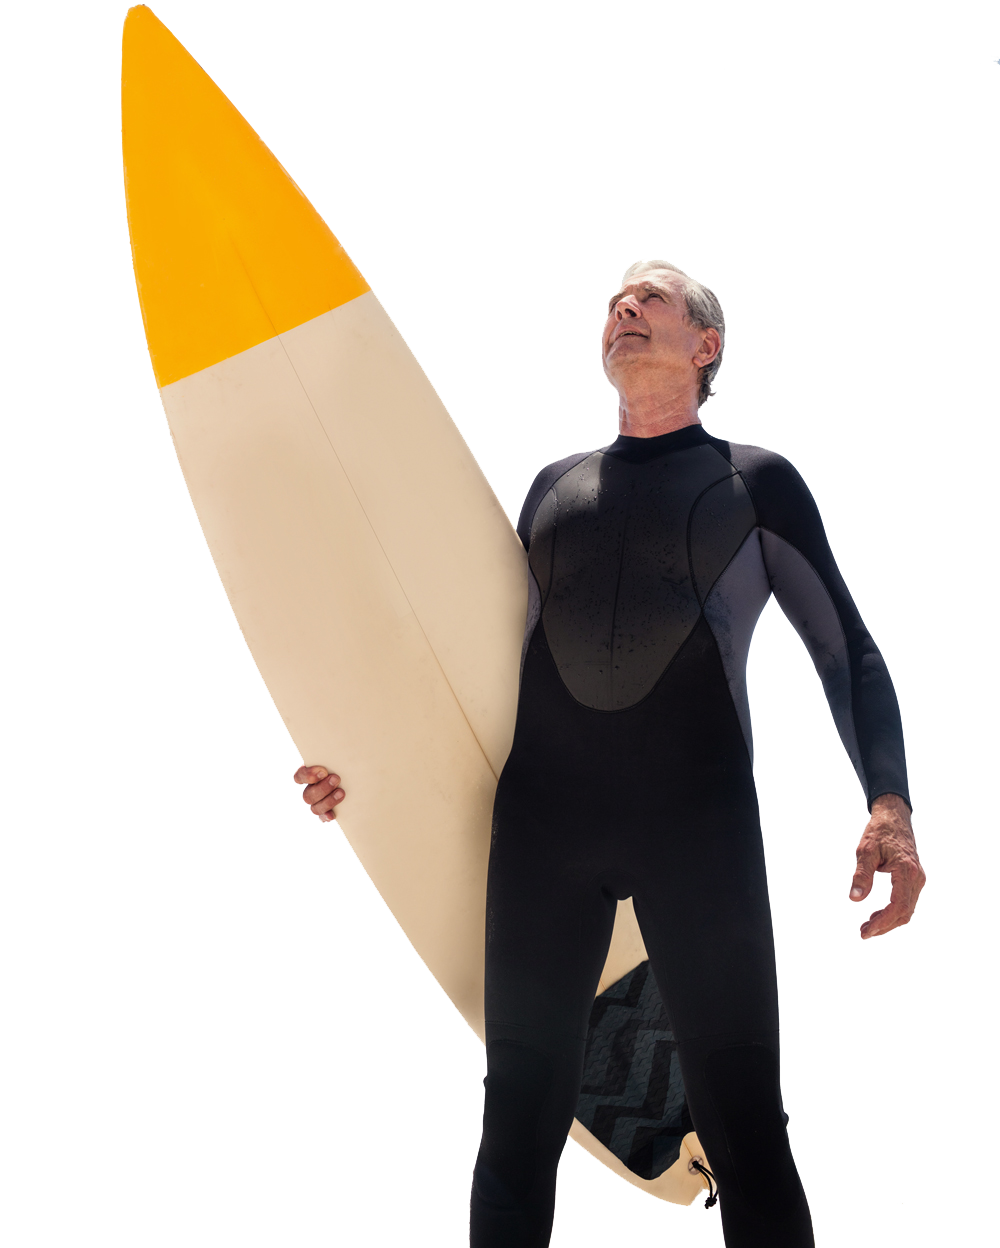 Image of a man over 50 in a black wetsuit holding a surfboard and looking at the sky